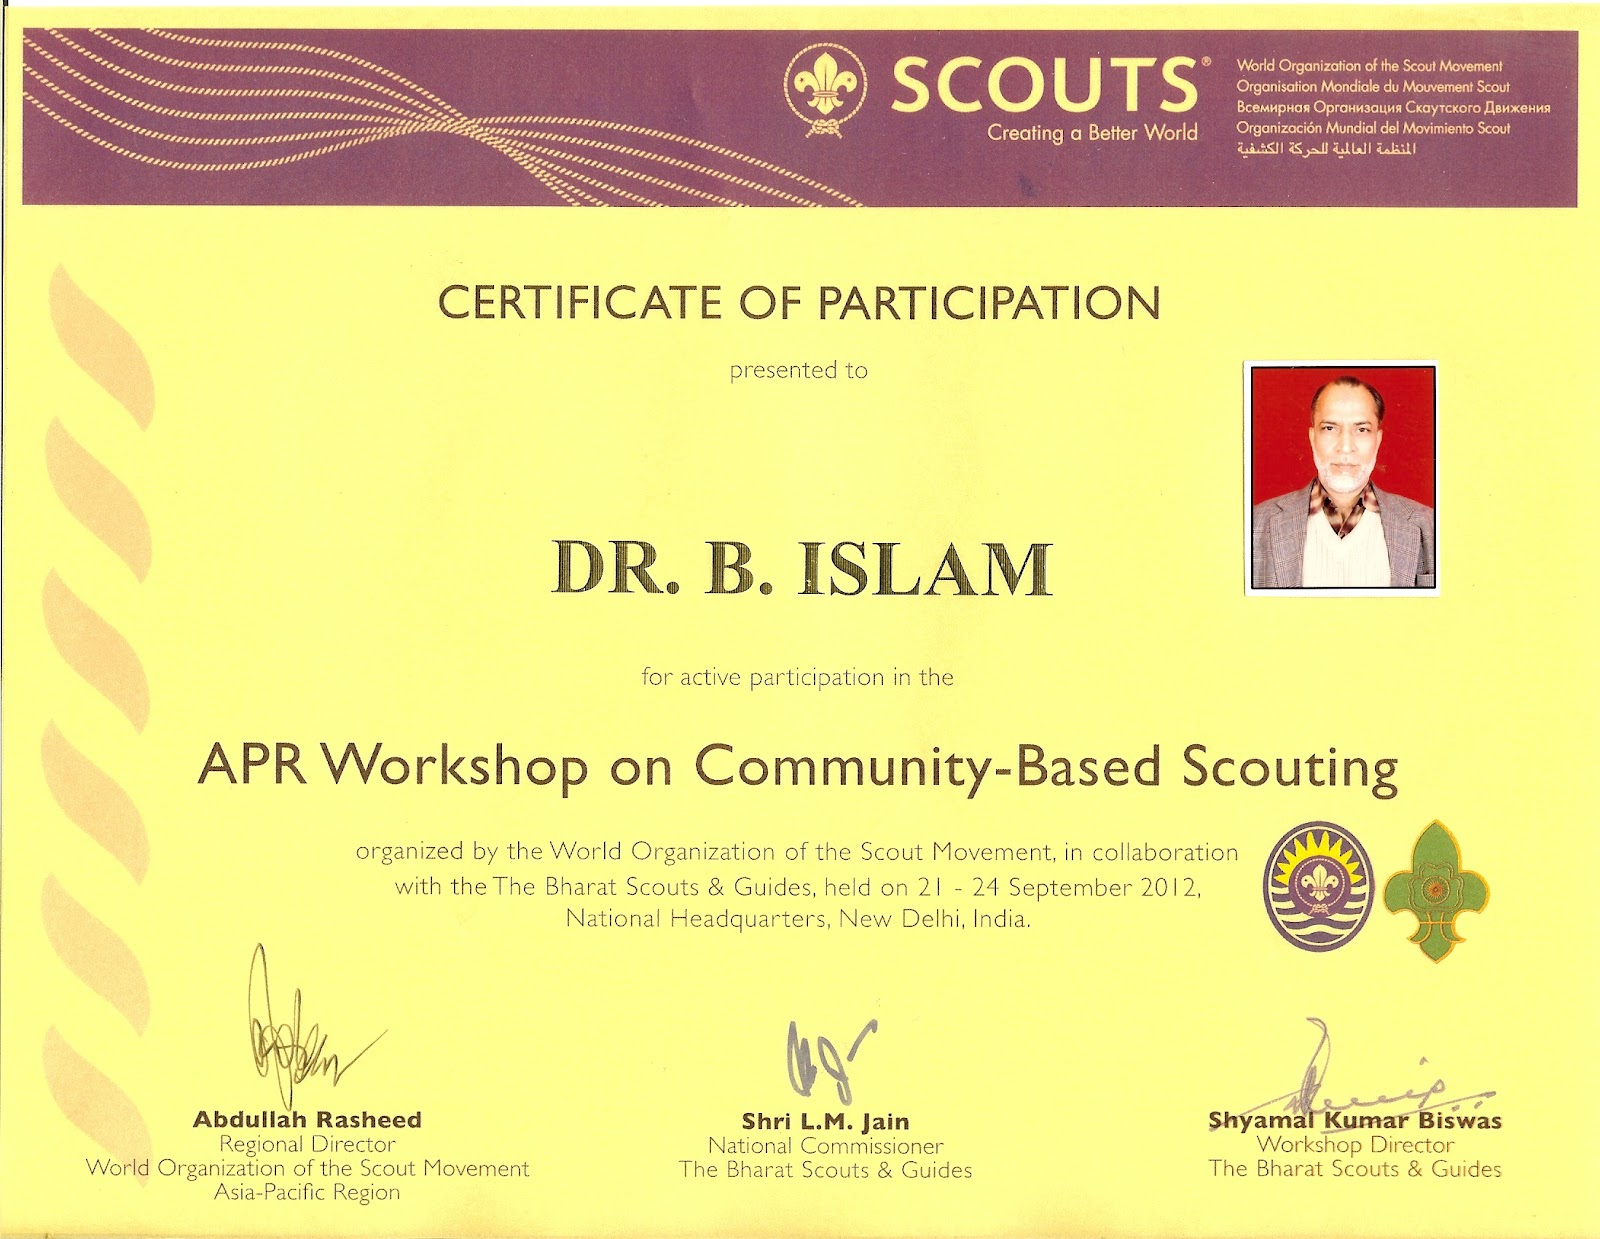 Kendriya vidyalaya sangathan bharat scouts guides my for Template for certificate of participation in workshop